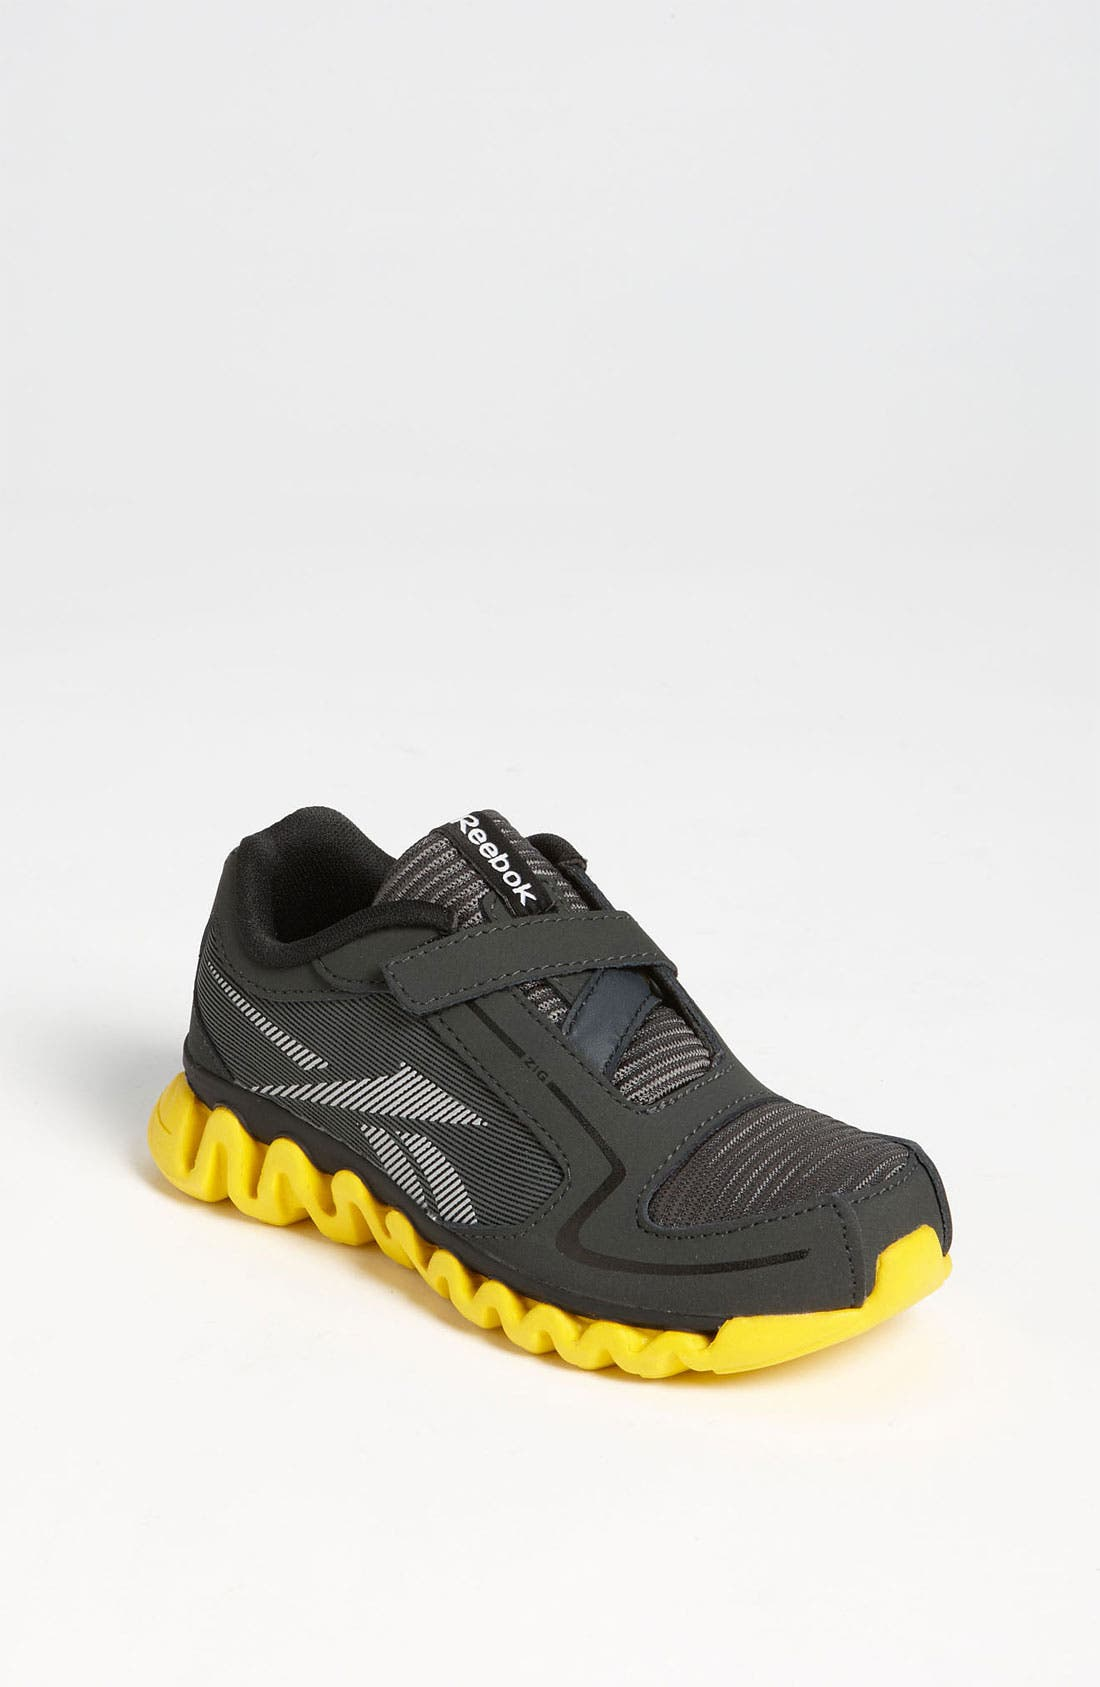 Main Image - Reebok 'ZigLite Run' Sneaker (Baby, Walker & Toddler)